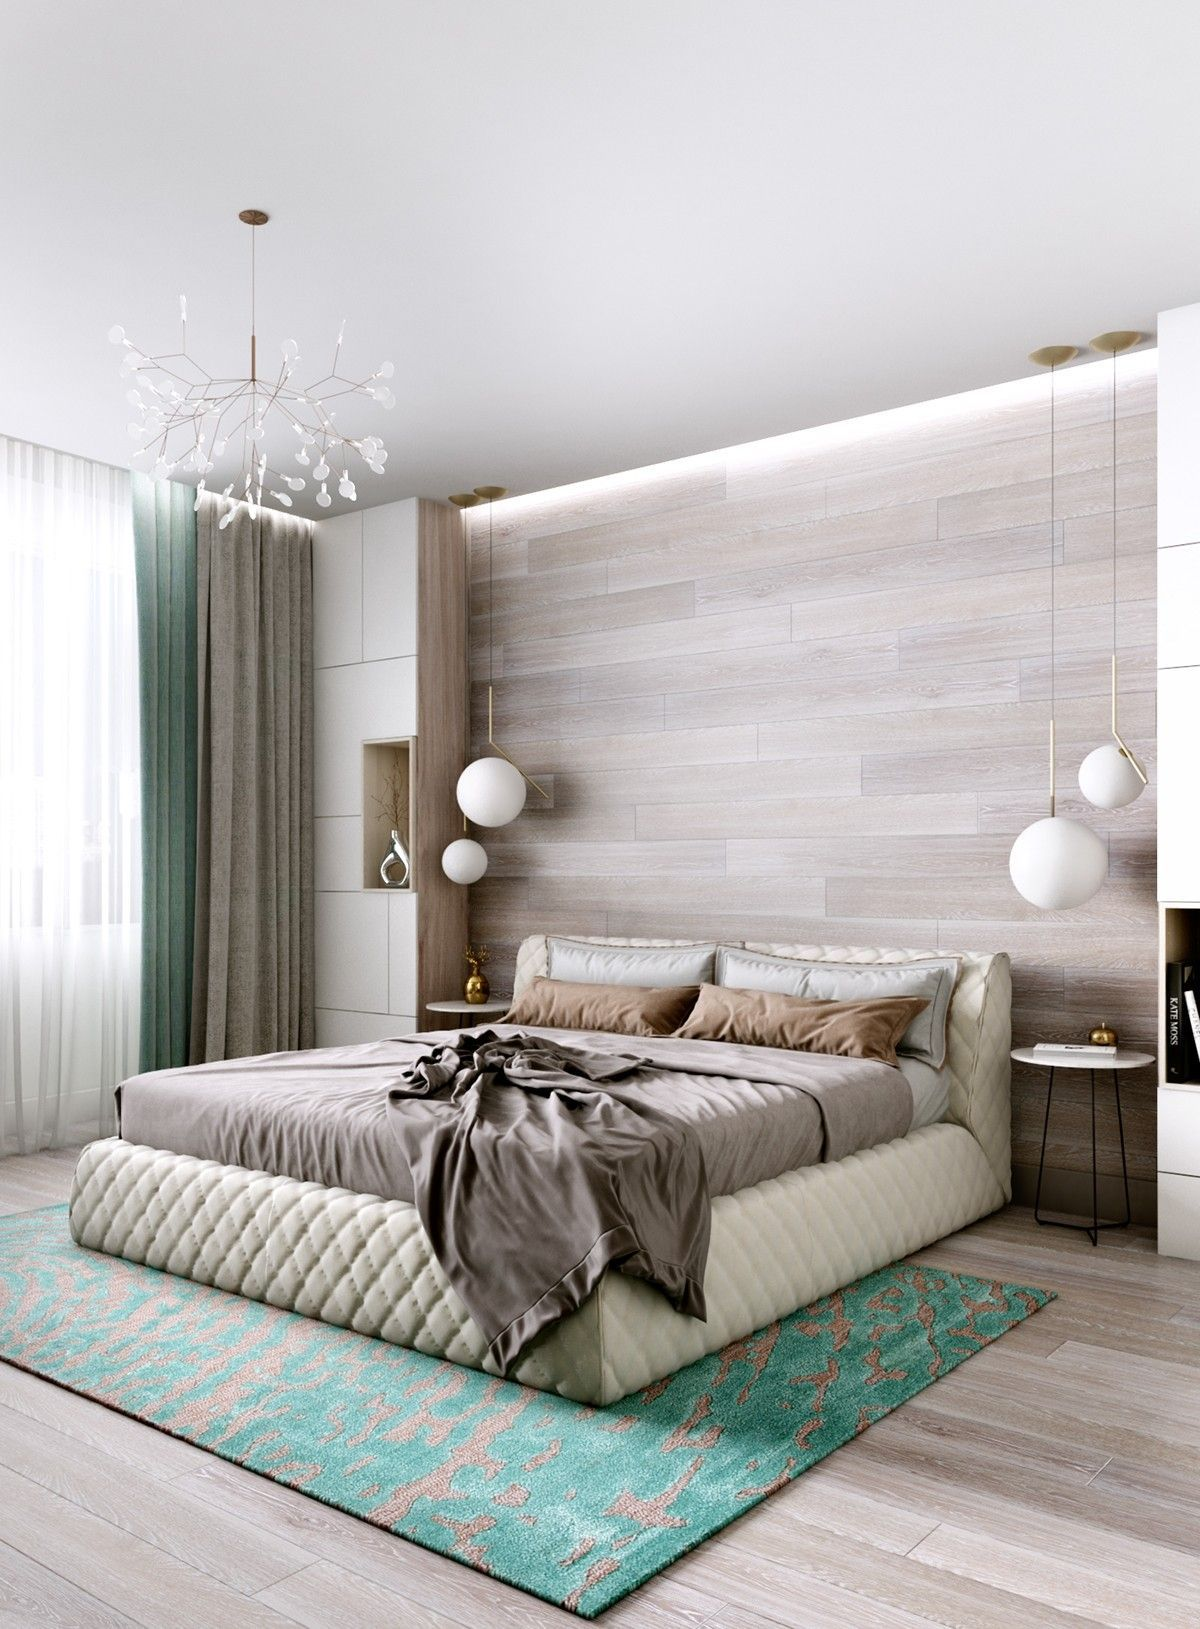 Master Bedroom Interior Design: Interior Design Inspirations For Your Luxury Bedroom